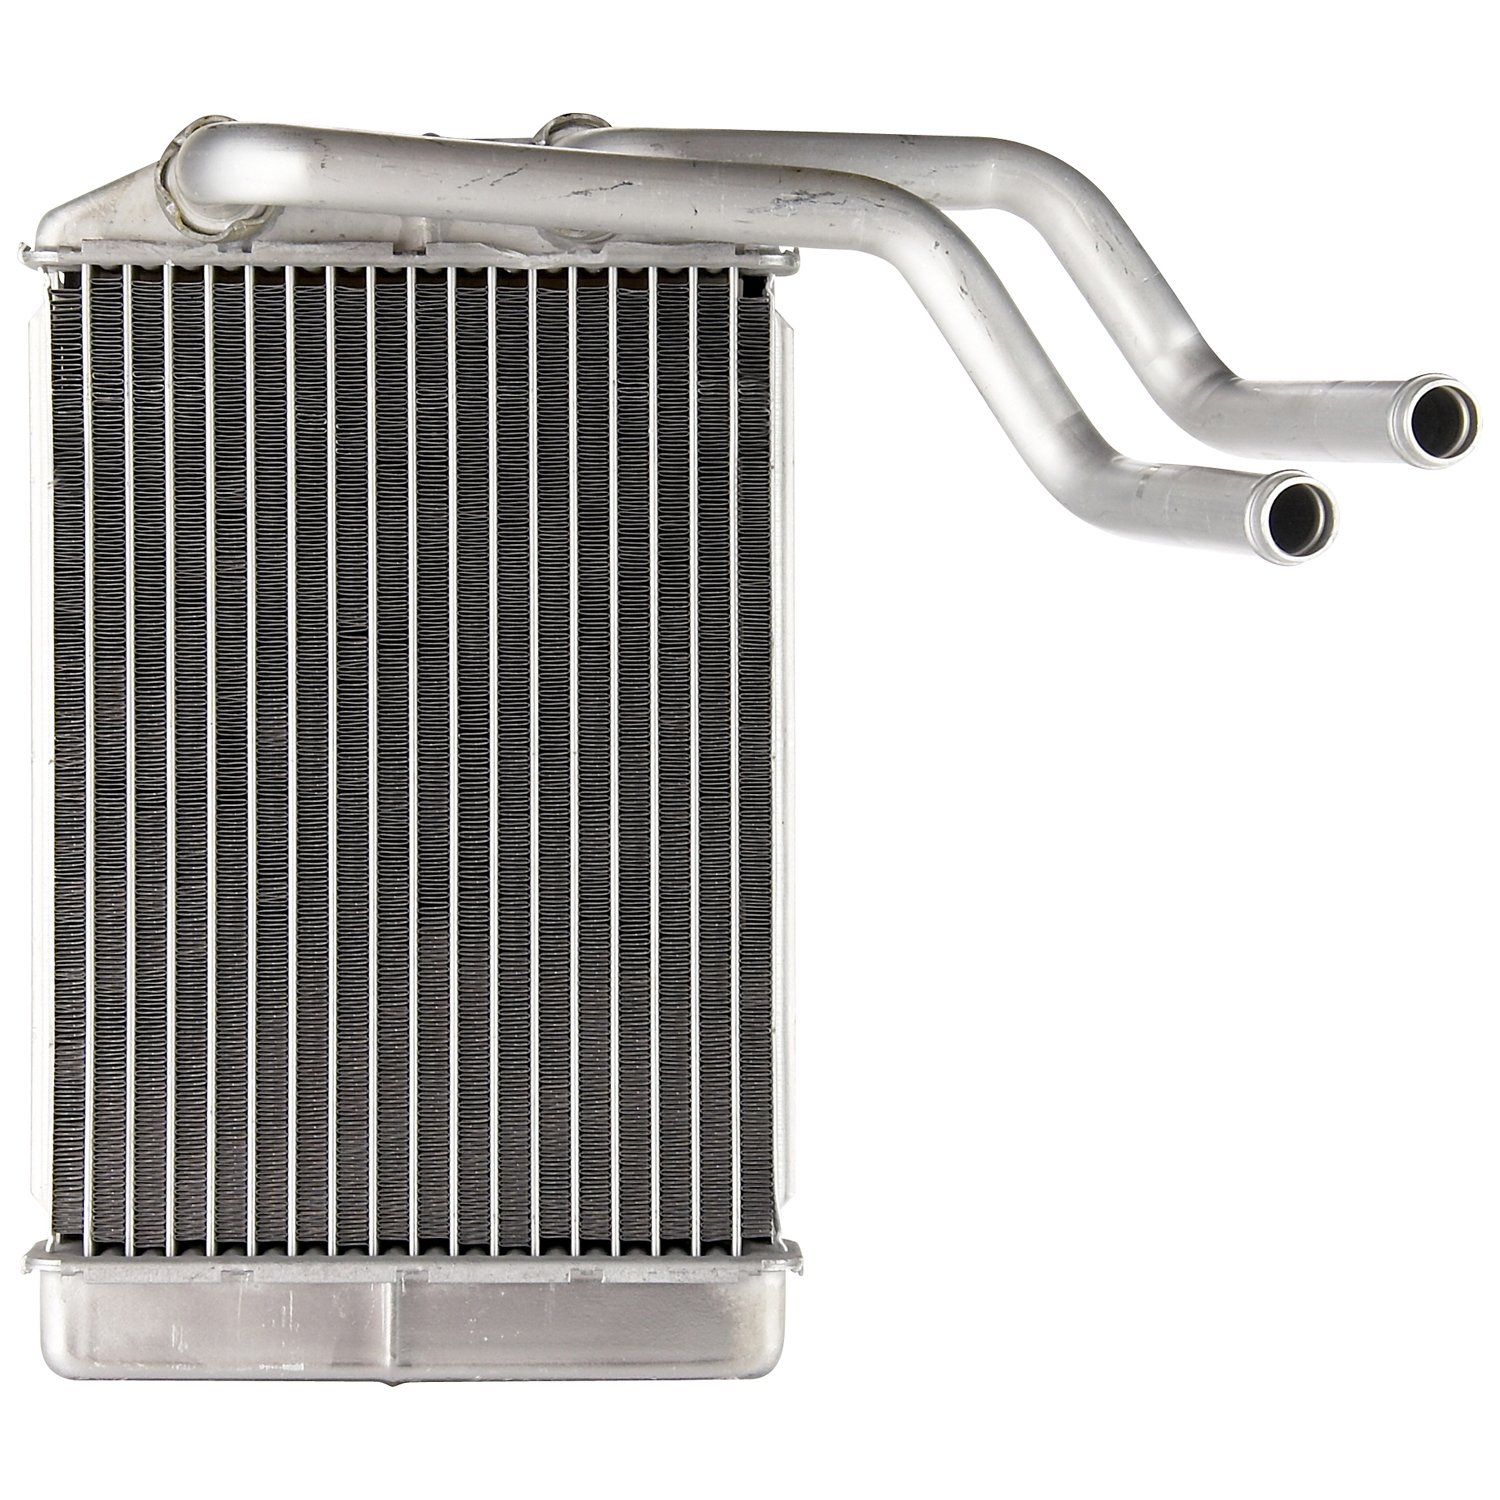 Spectra Premium 94466 Heater Core for Dodge Pickup by Spectra Premium